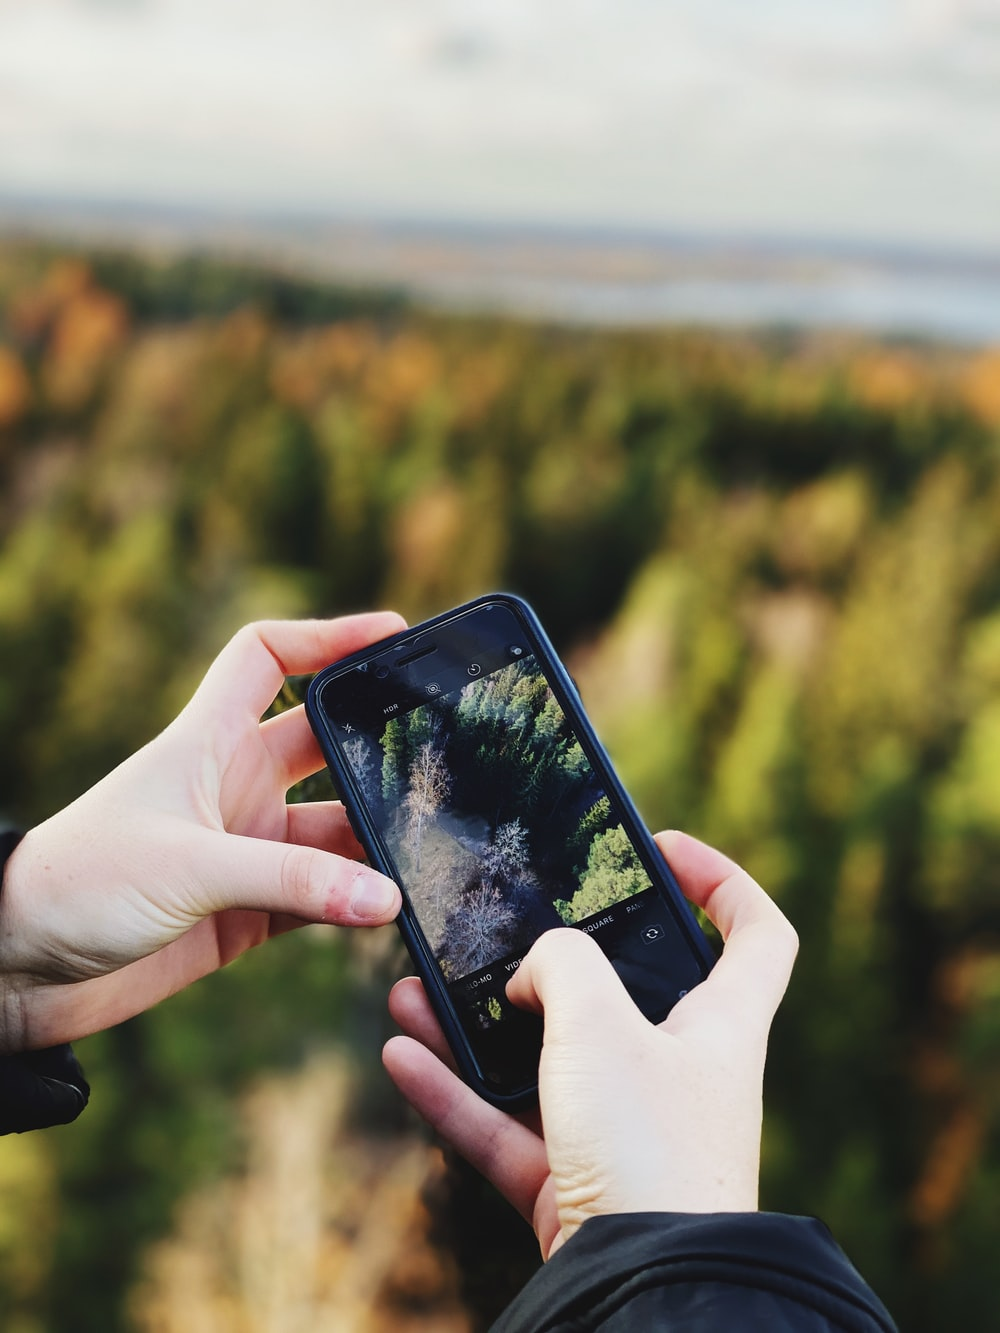 person taking photo of green pine trees using black smartphone